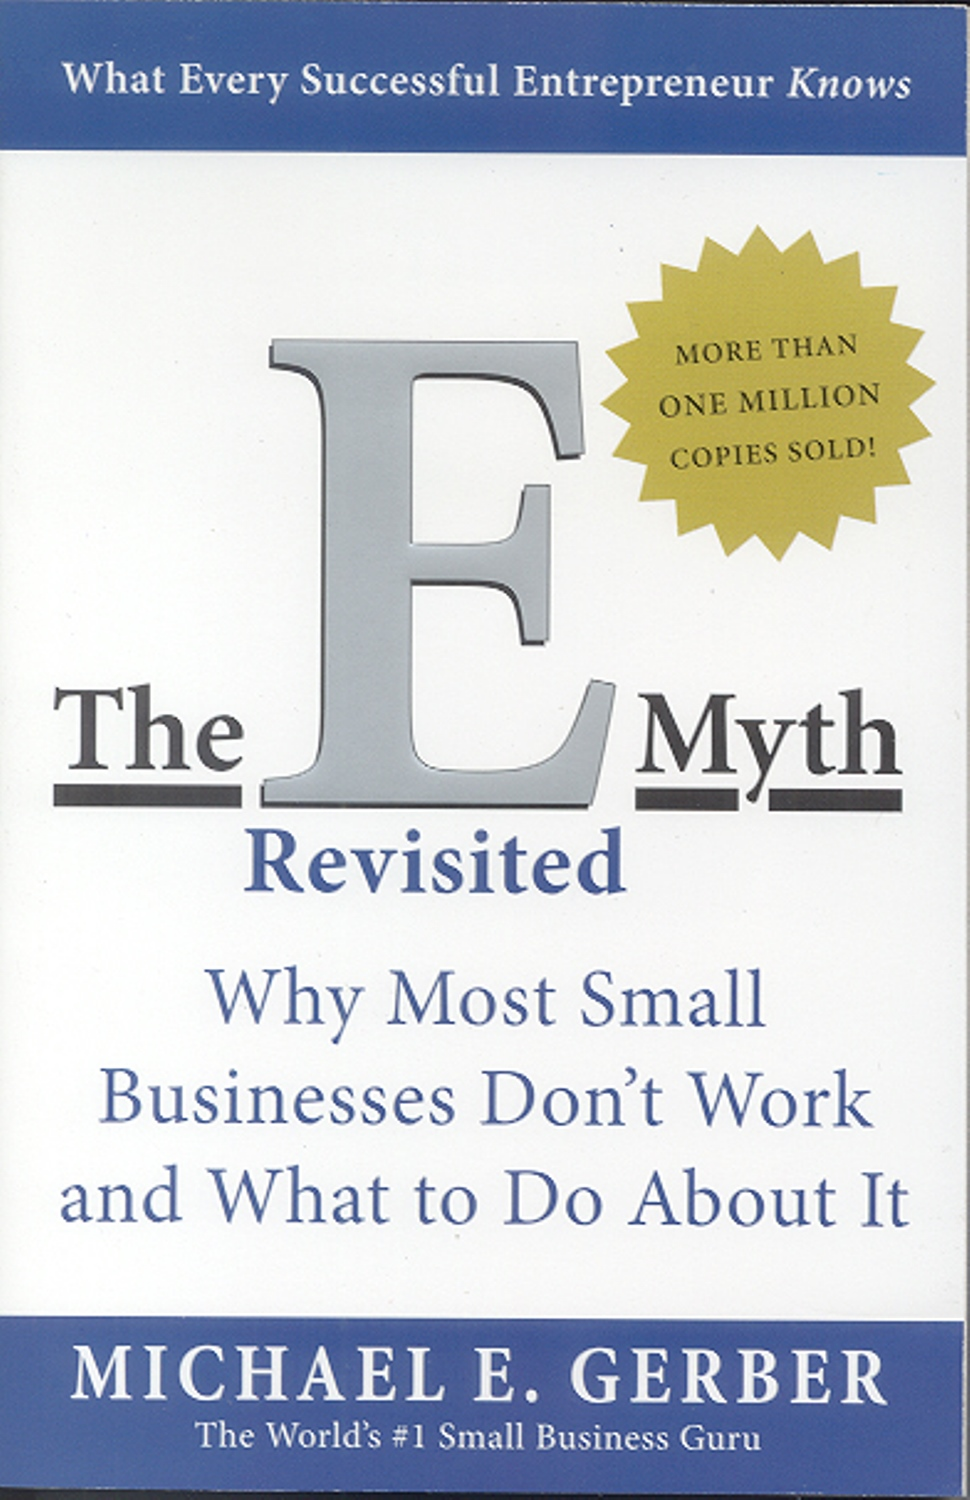 the emyth revisited why most small businesses dont work and what to do about it english edition j8ih05k